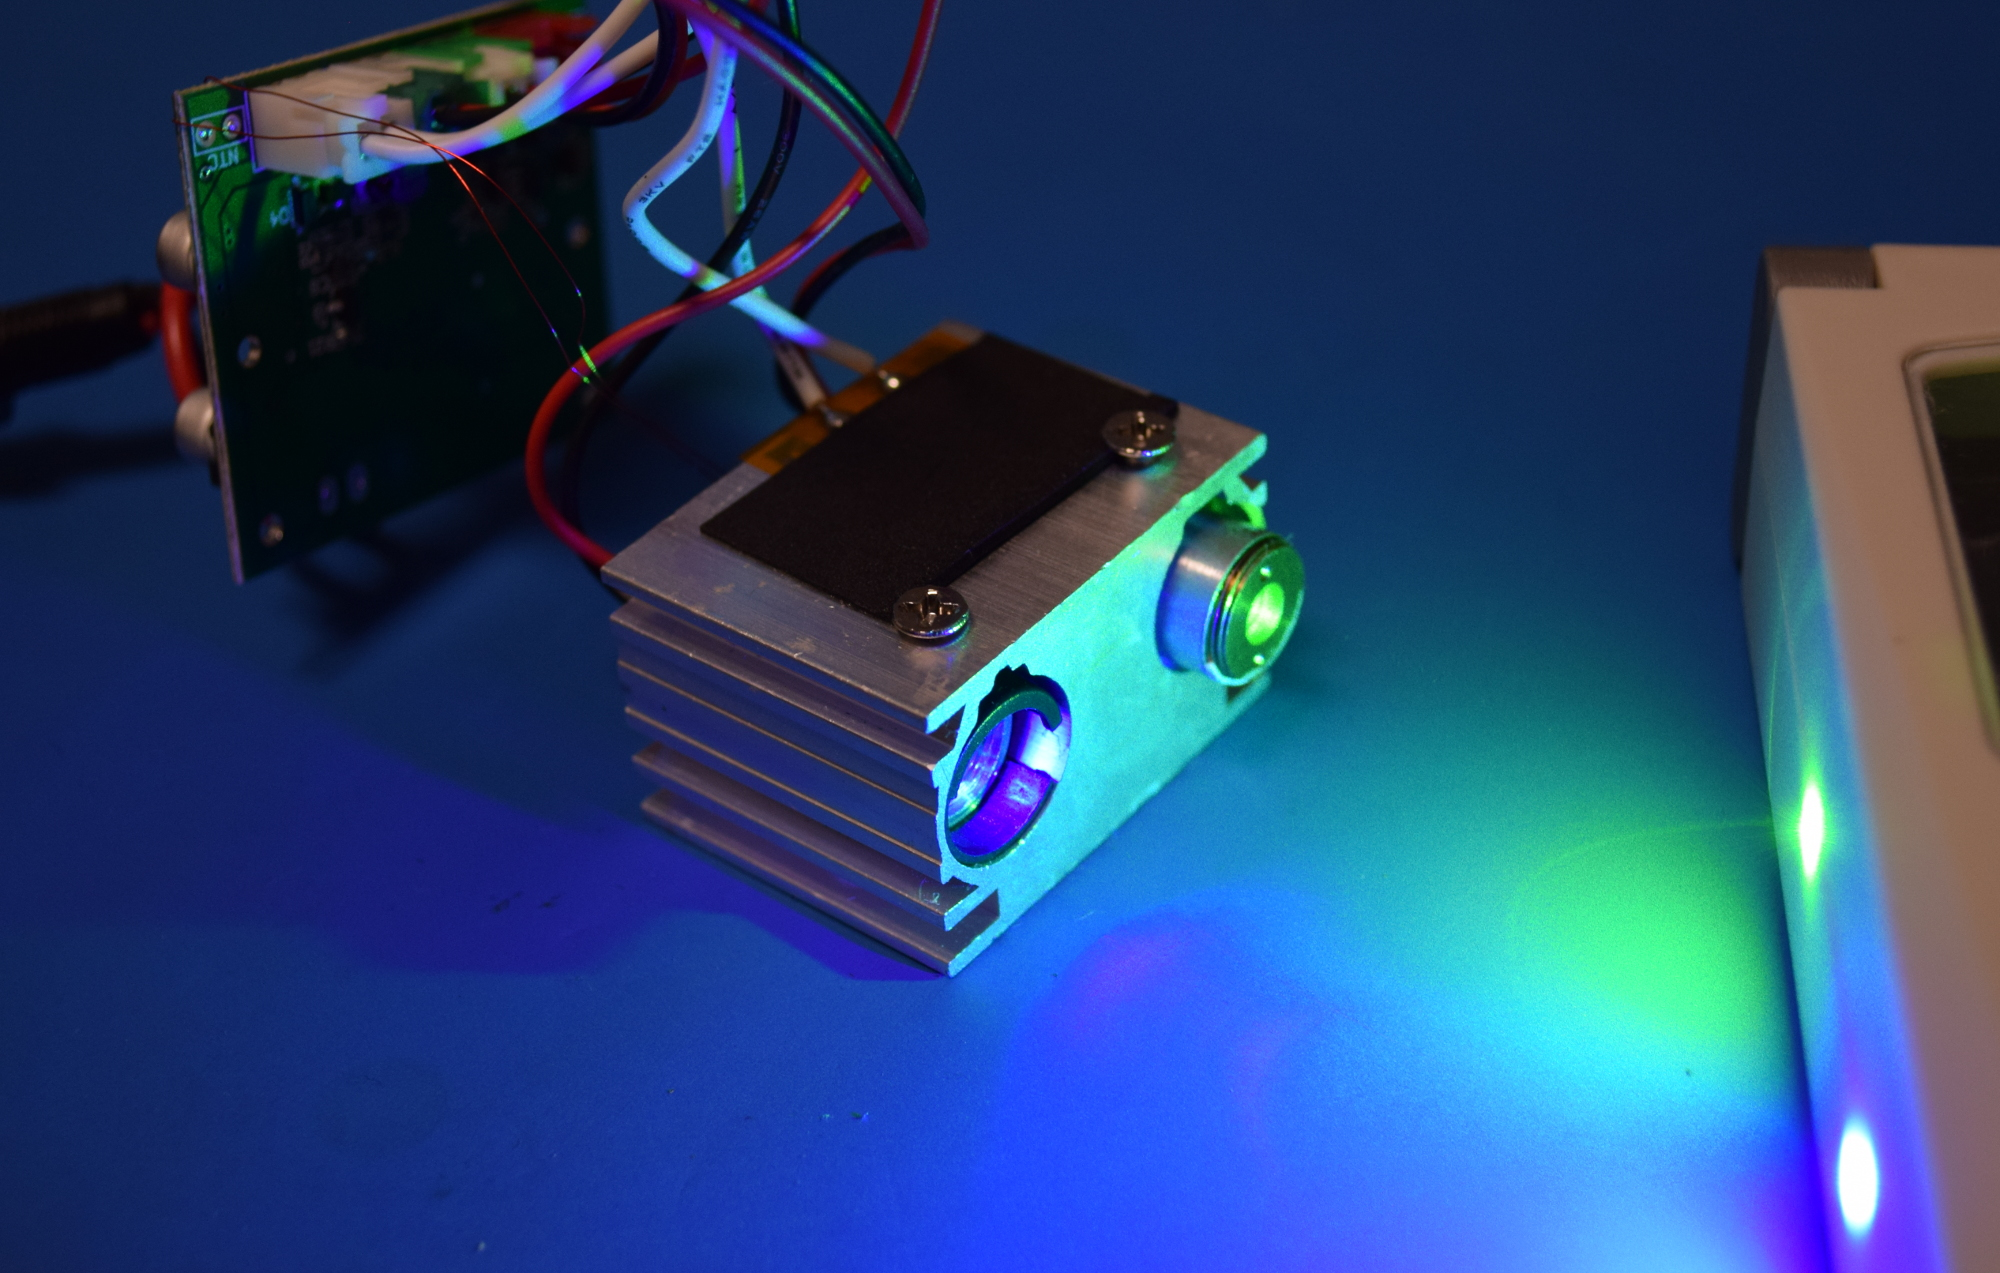 Teardown: What's Inside A Christmas Laser Projector? | Hackaday